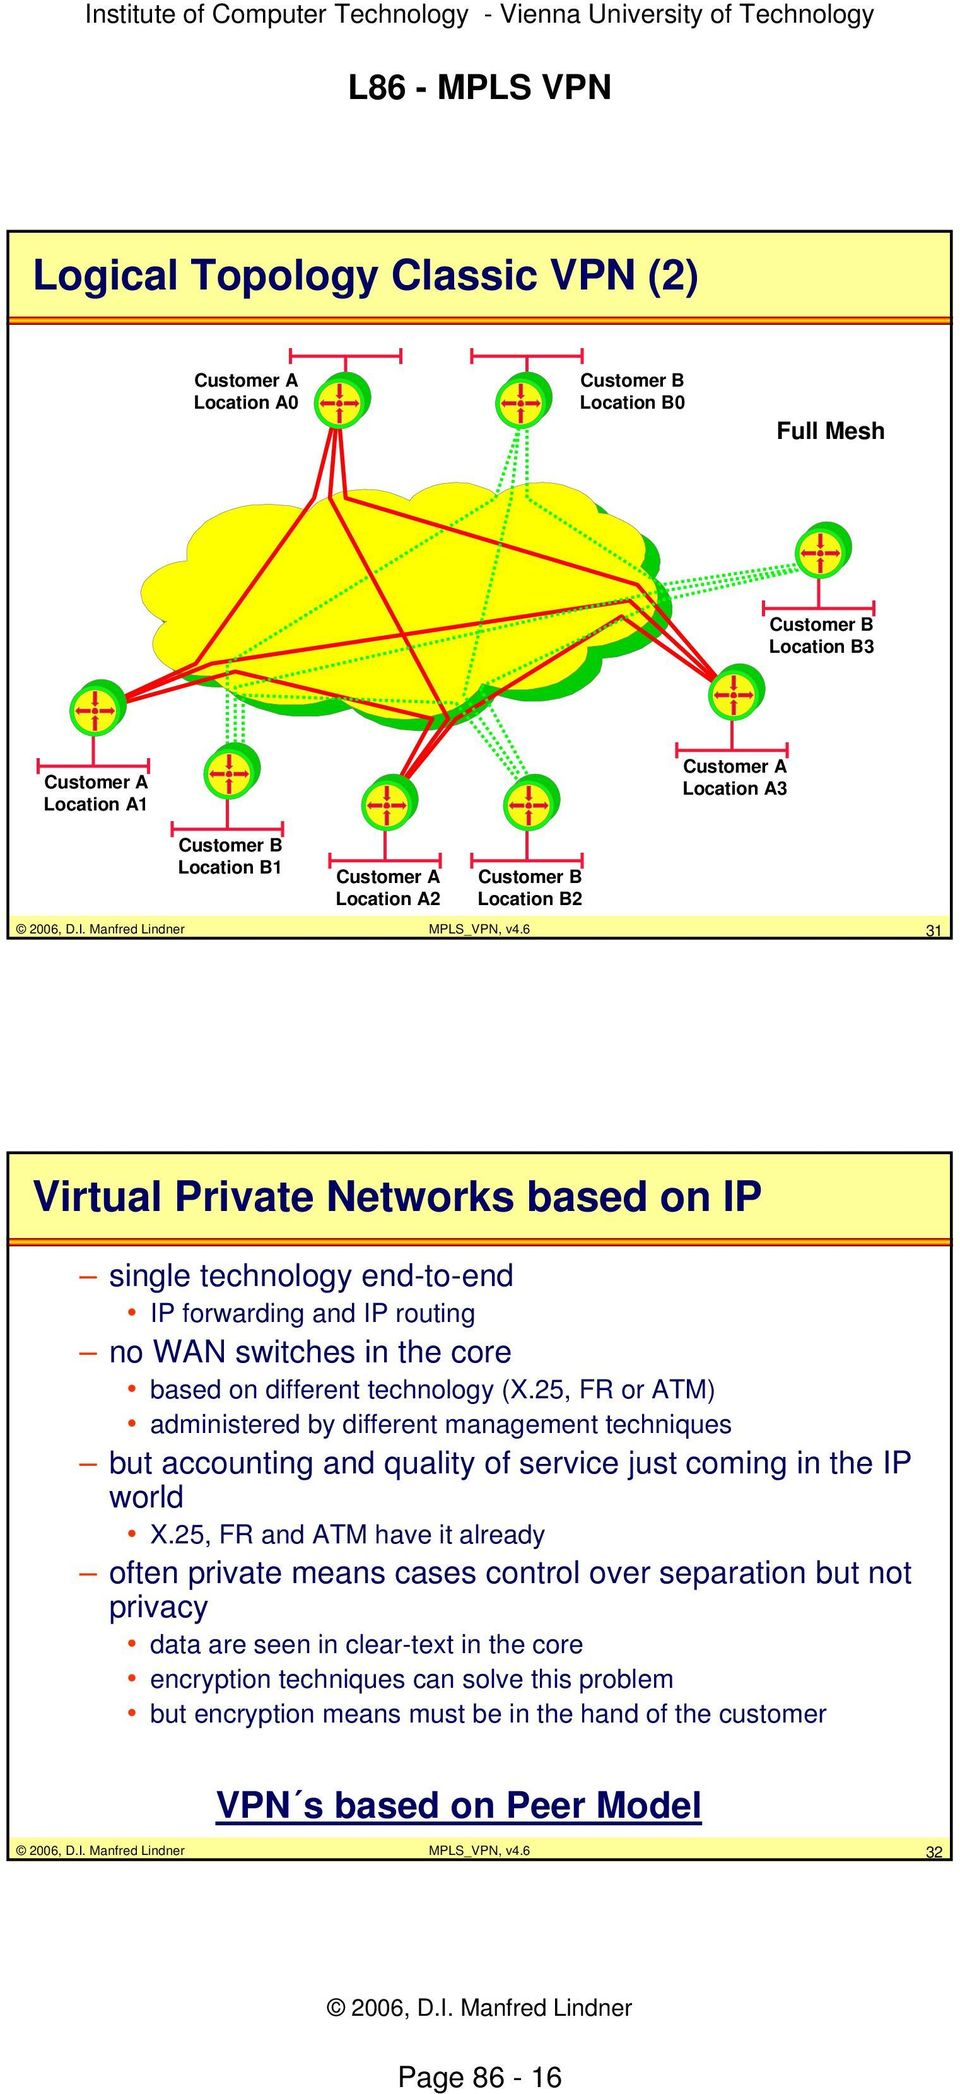 6 31 Virtual Private Networks based on IP single technology end-to-end IP forwarding and IP routing no WAN switches in the core based on different technology (X.